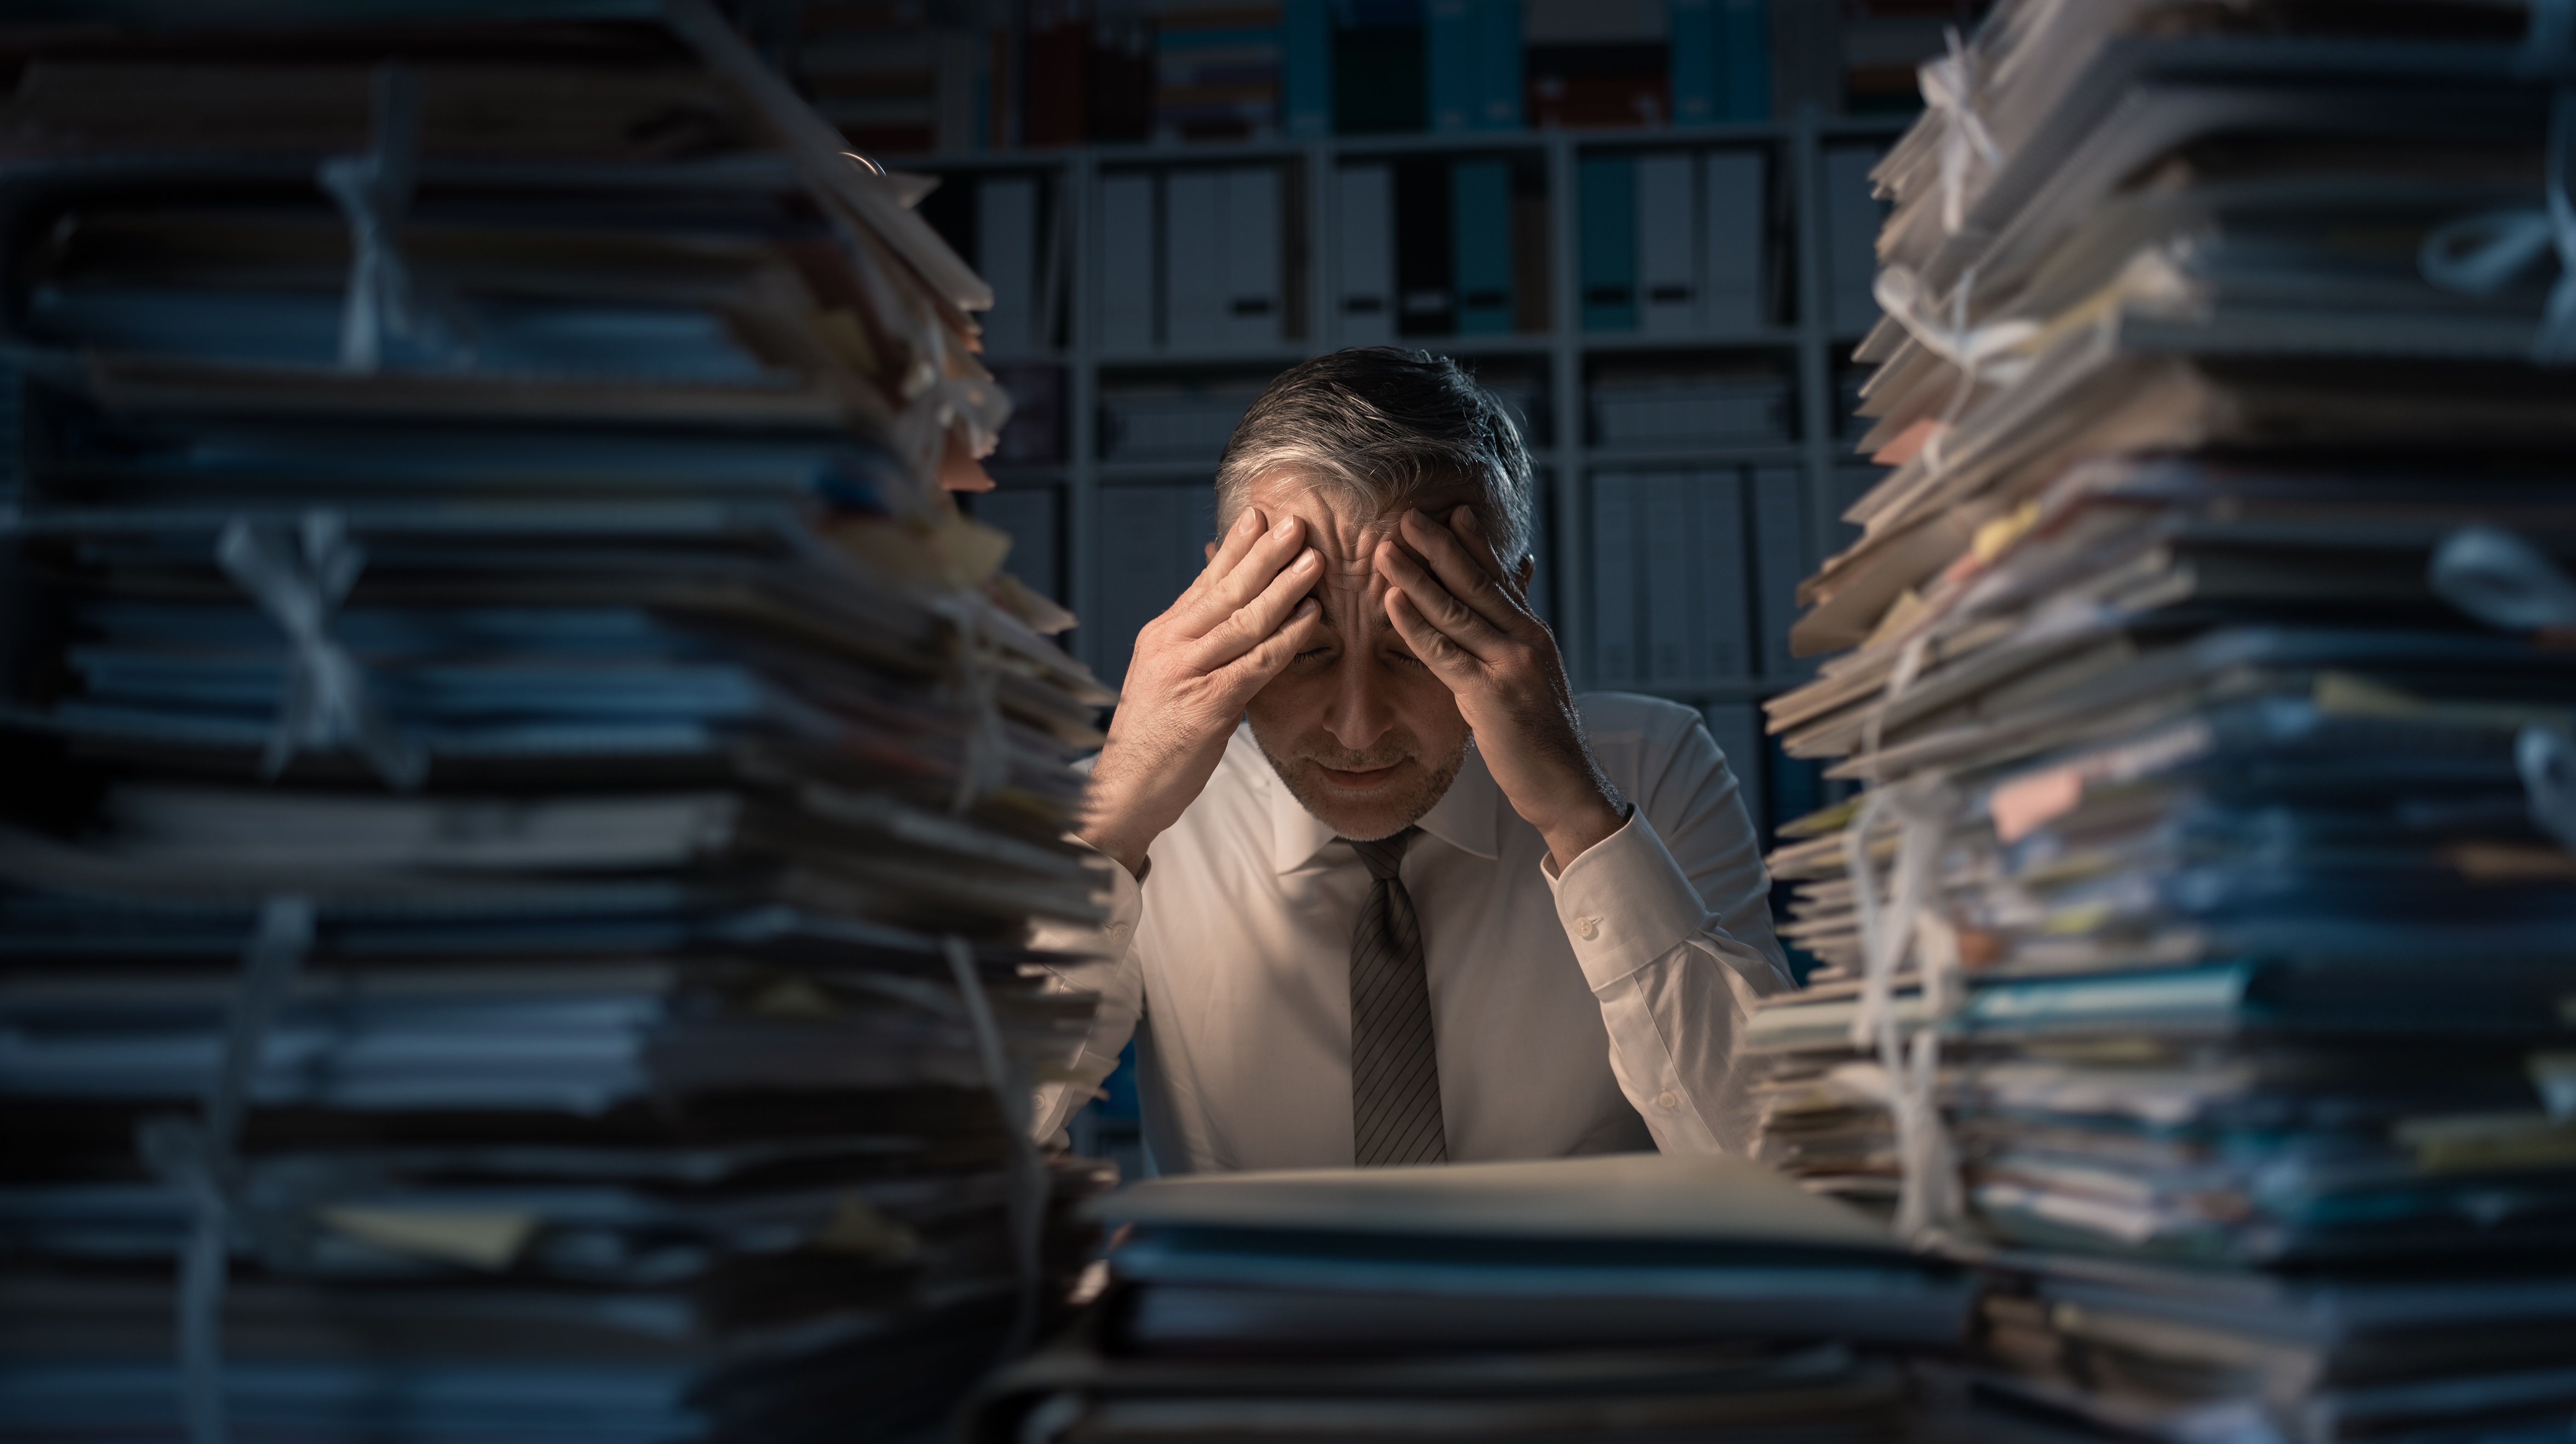 Man stressed out by mountains of work